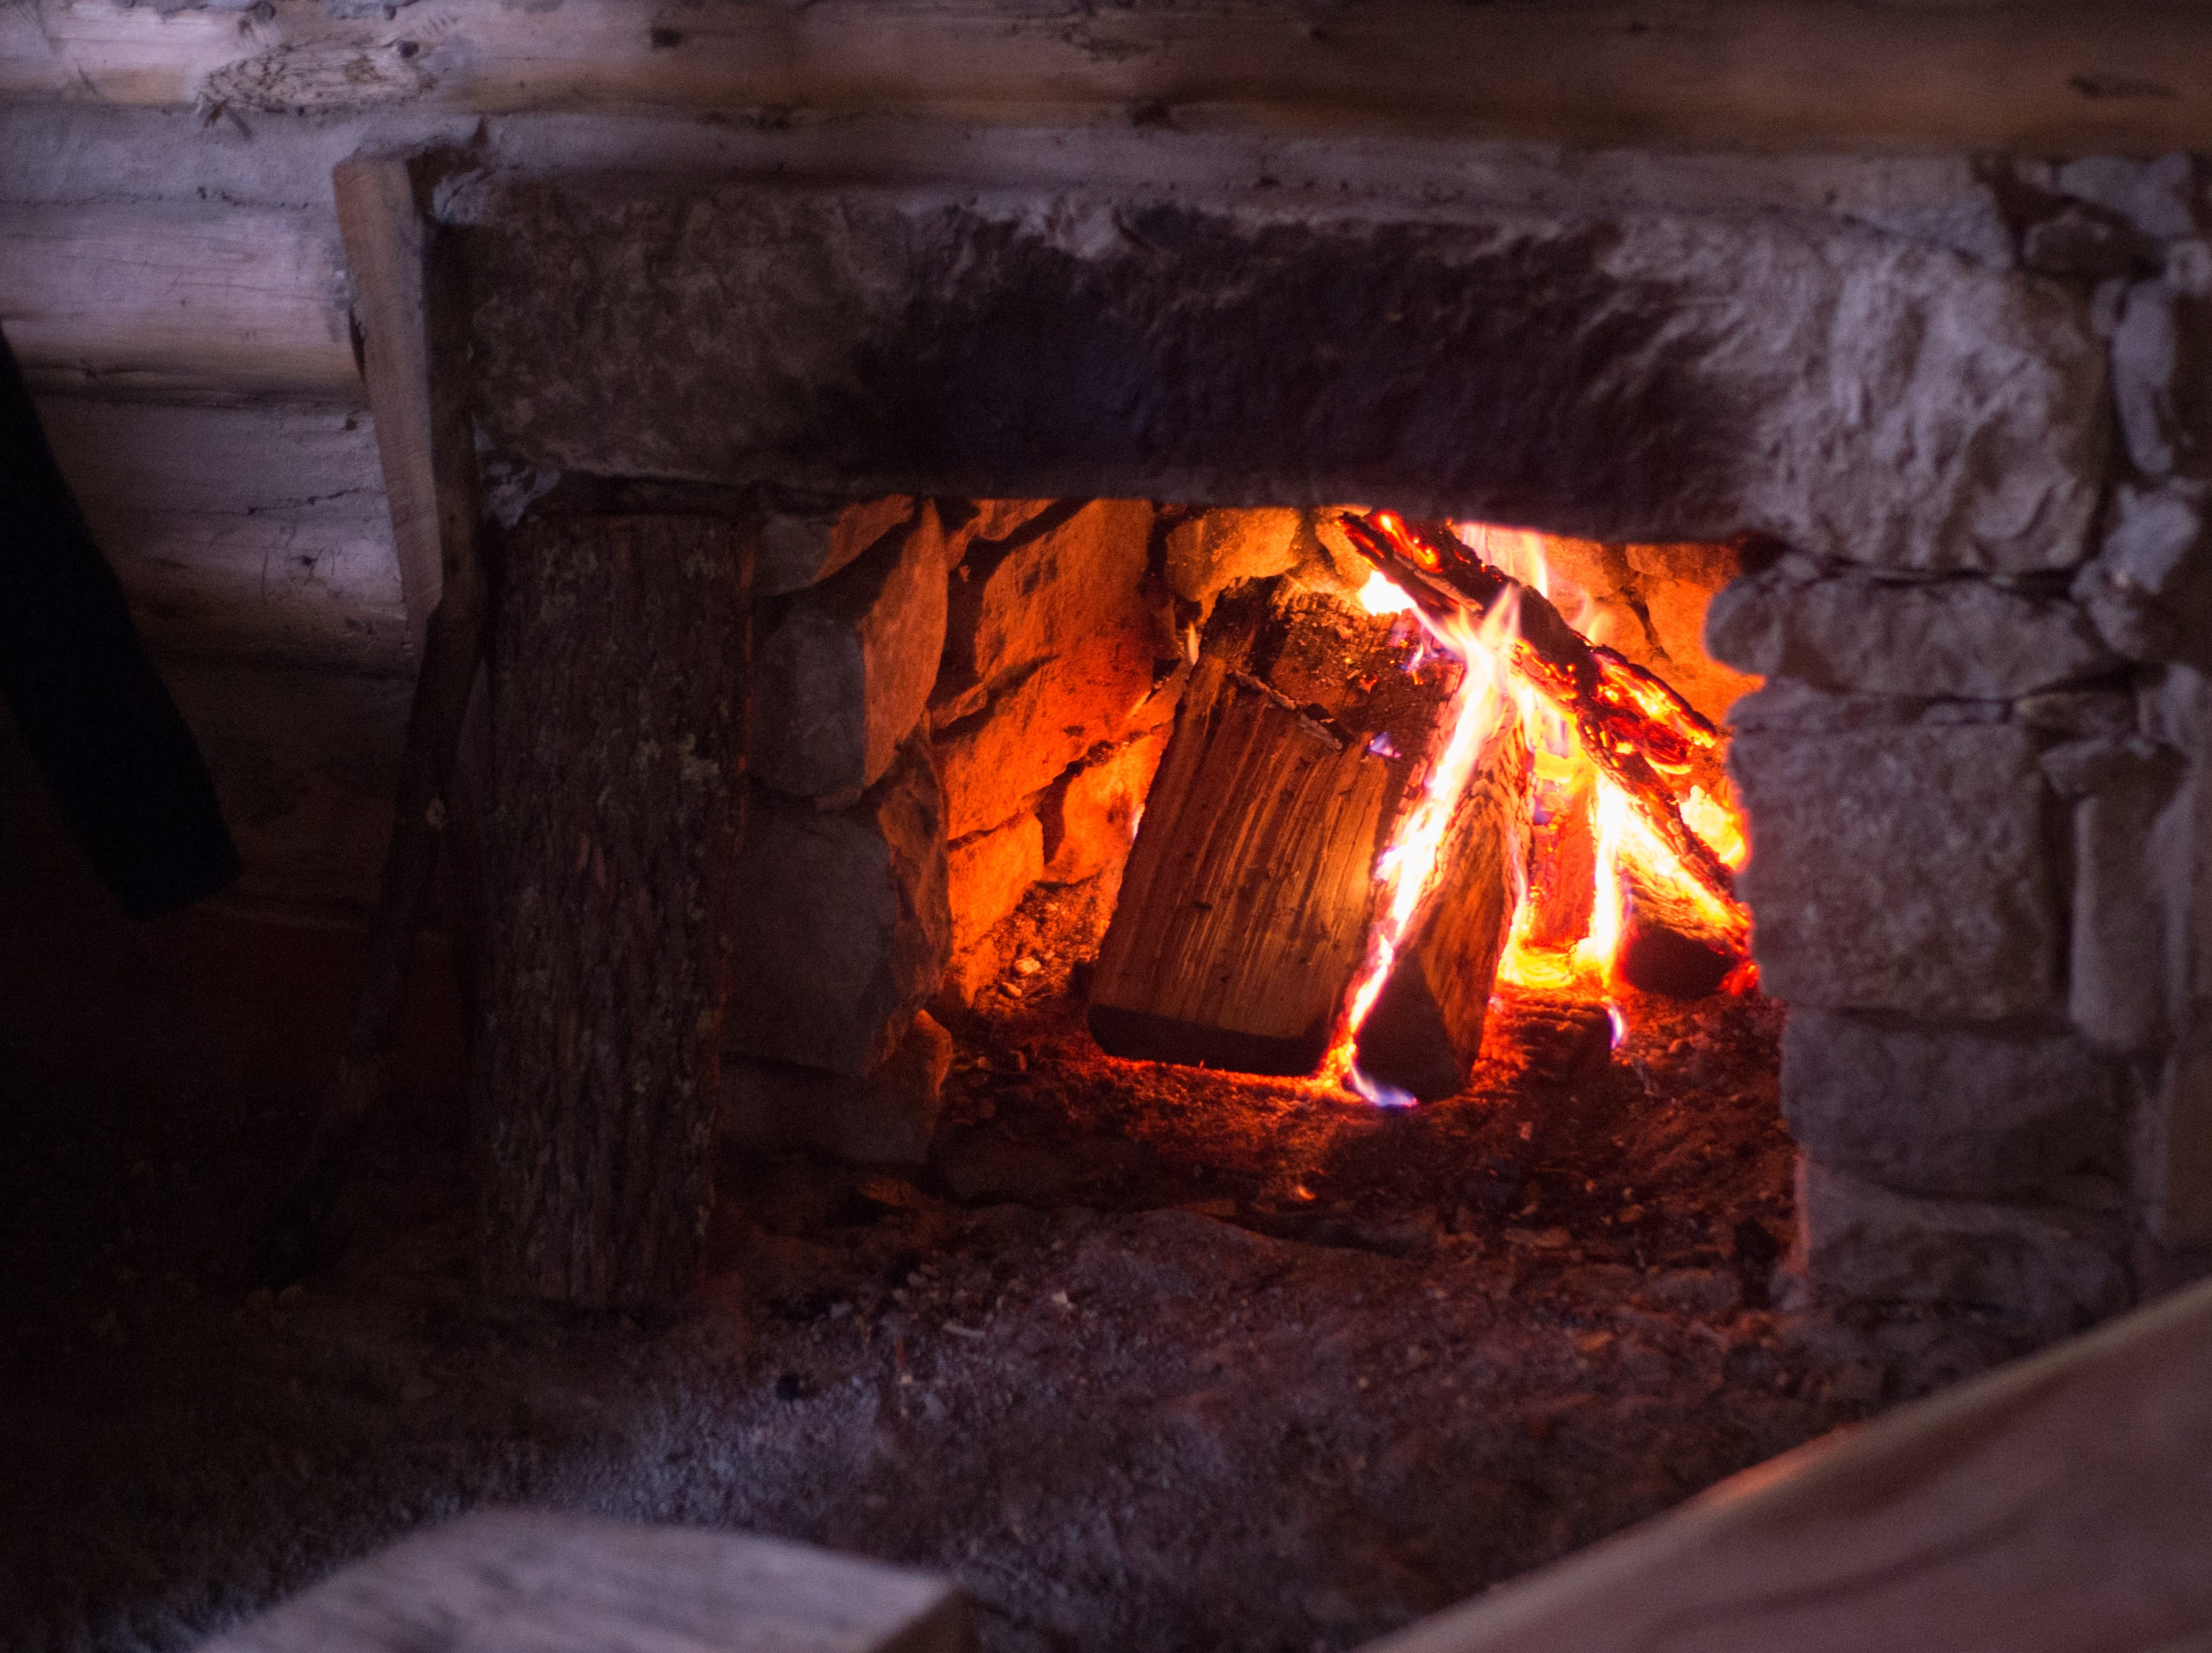 Attendees could enjoy a warm fire during a Tomahawk Throwing for Beginners event hosted by Middle Tennessee History Coalition at Bledsoe Creek State Park on Saturday, Jan. 12.